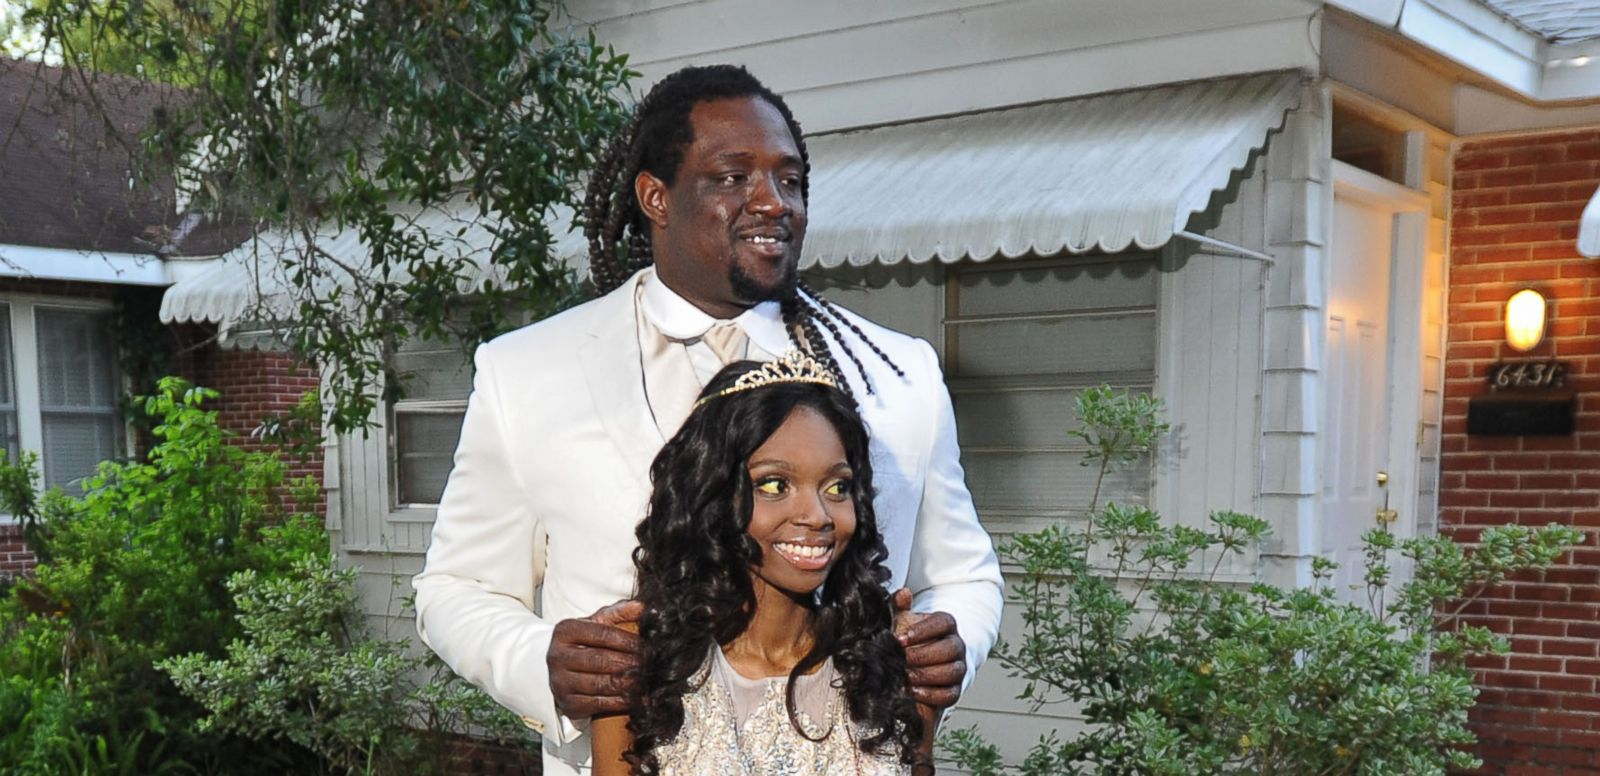 VIDEO: Jacksonville Jaguars player Sen'Derrick Marks took 18-year-old Khamayea Jennings to her senior prom, thanks to a non-profit that set up the date.